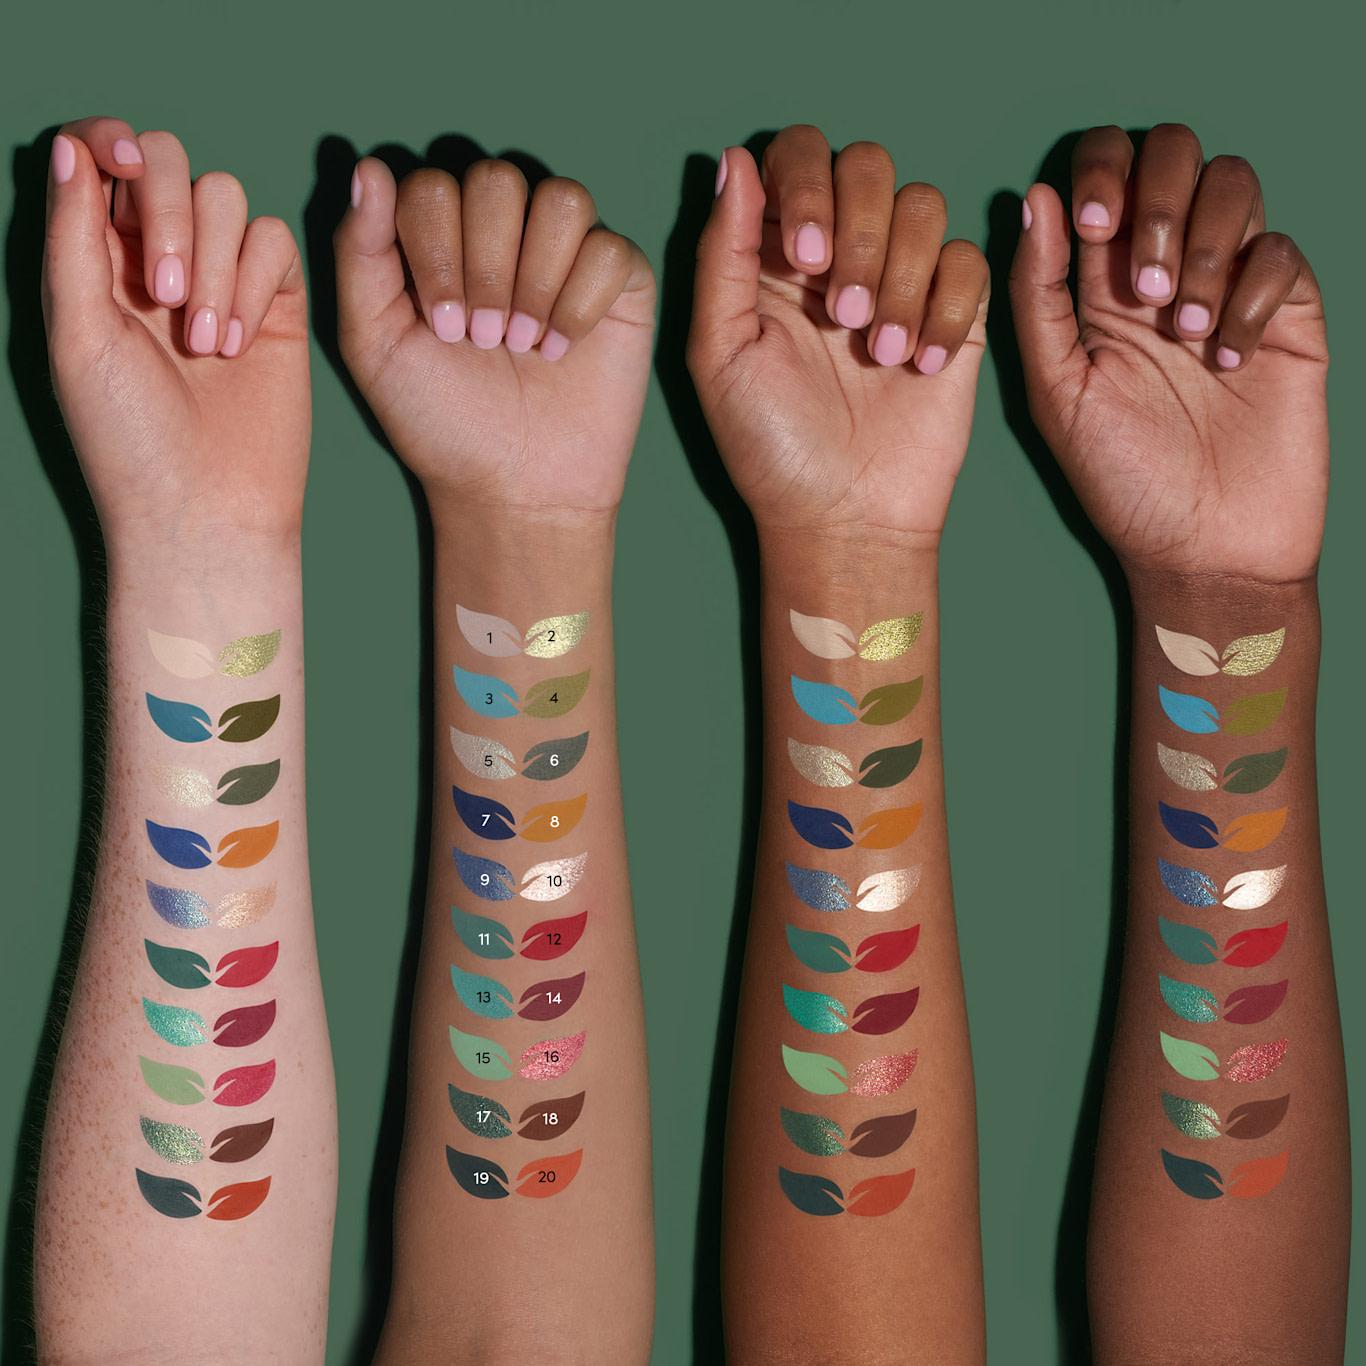 Beauty Bay Wilderness Palette Arm Swatches